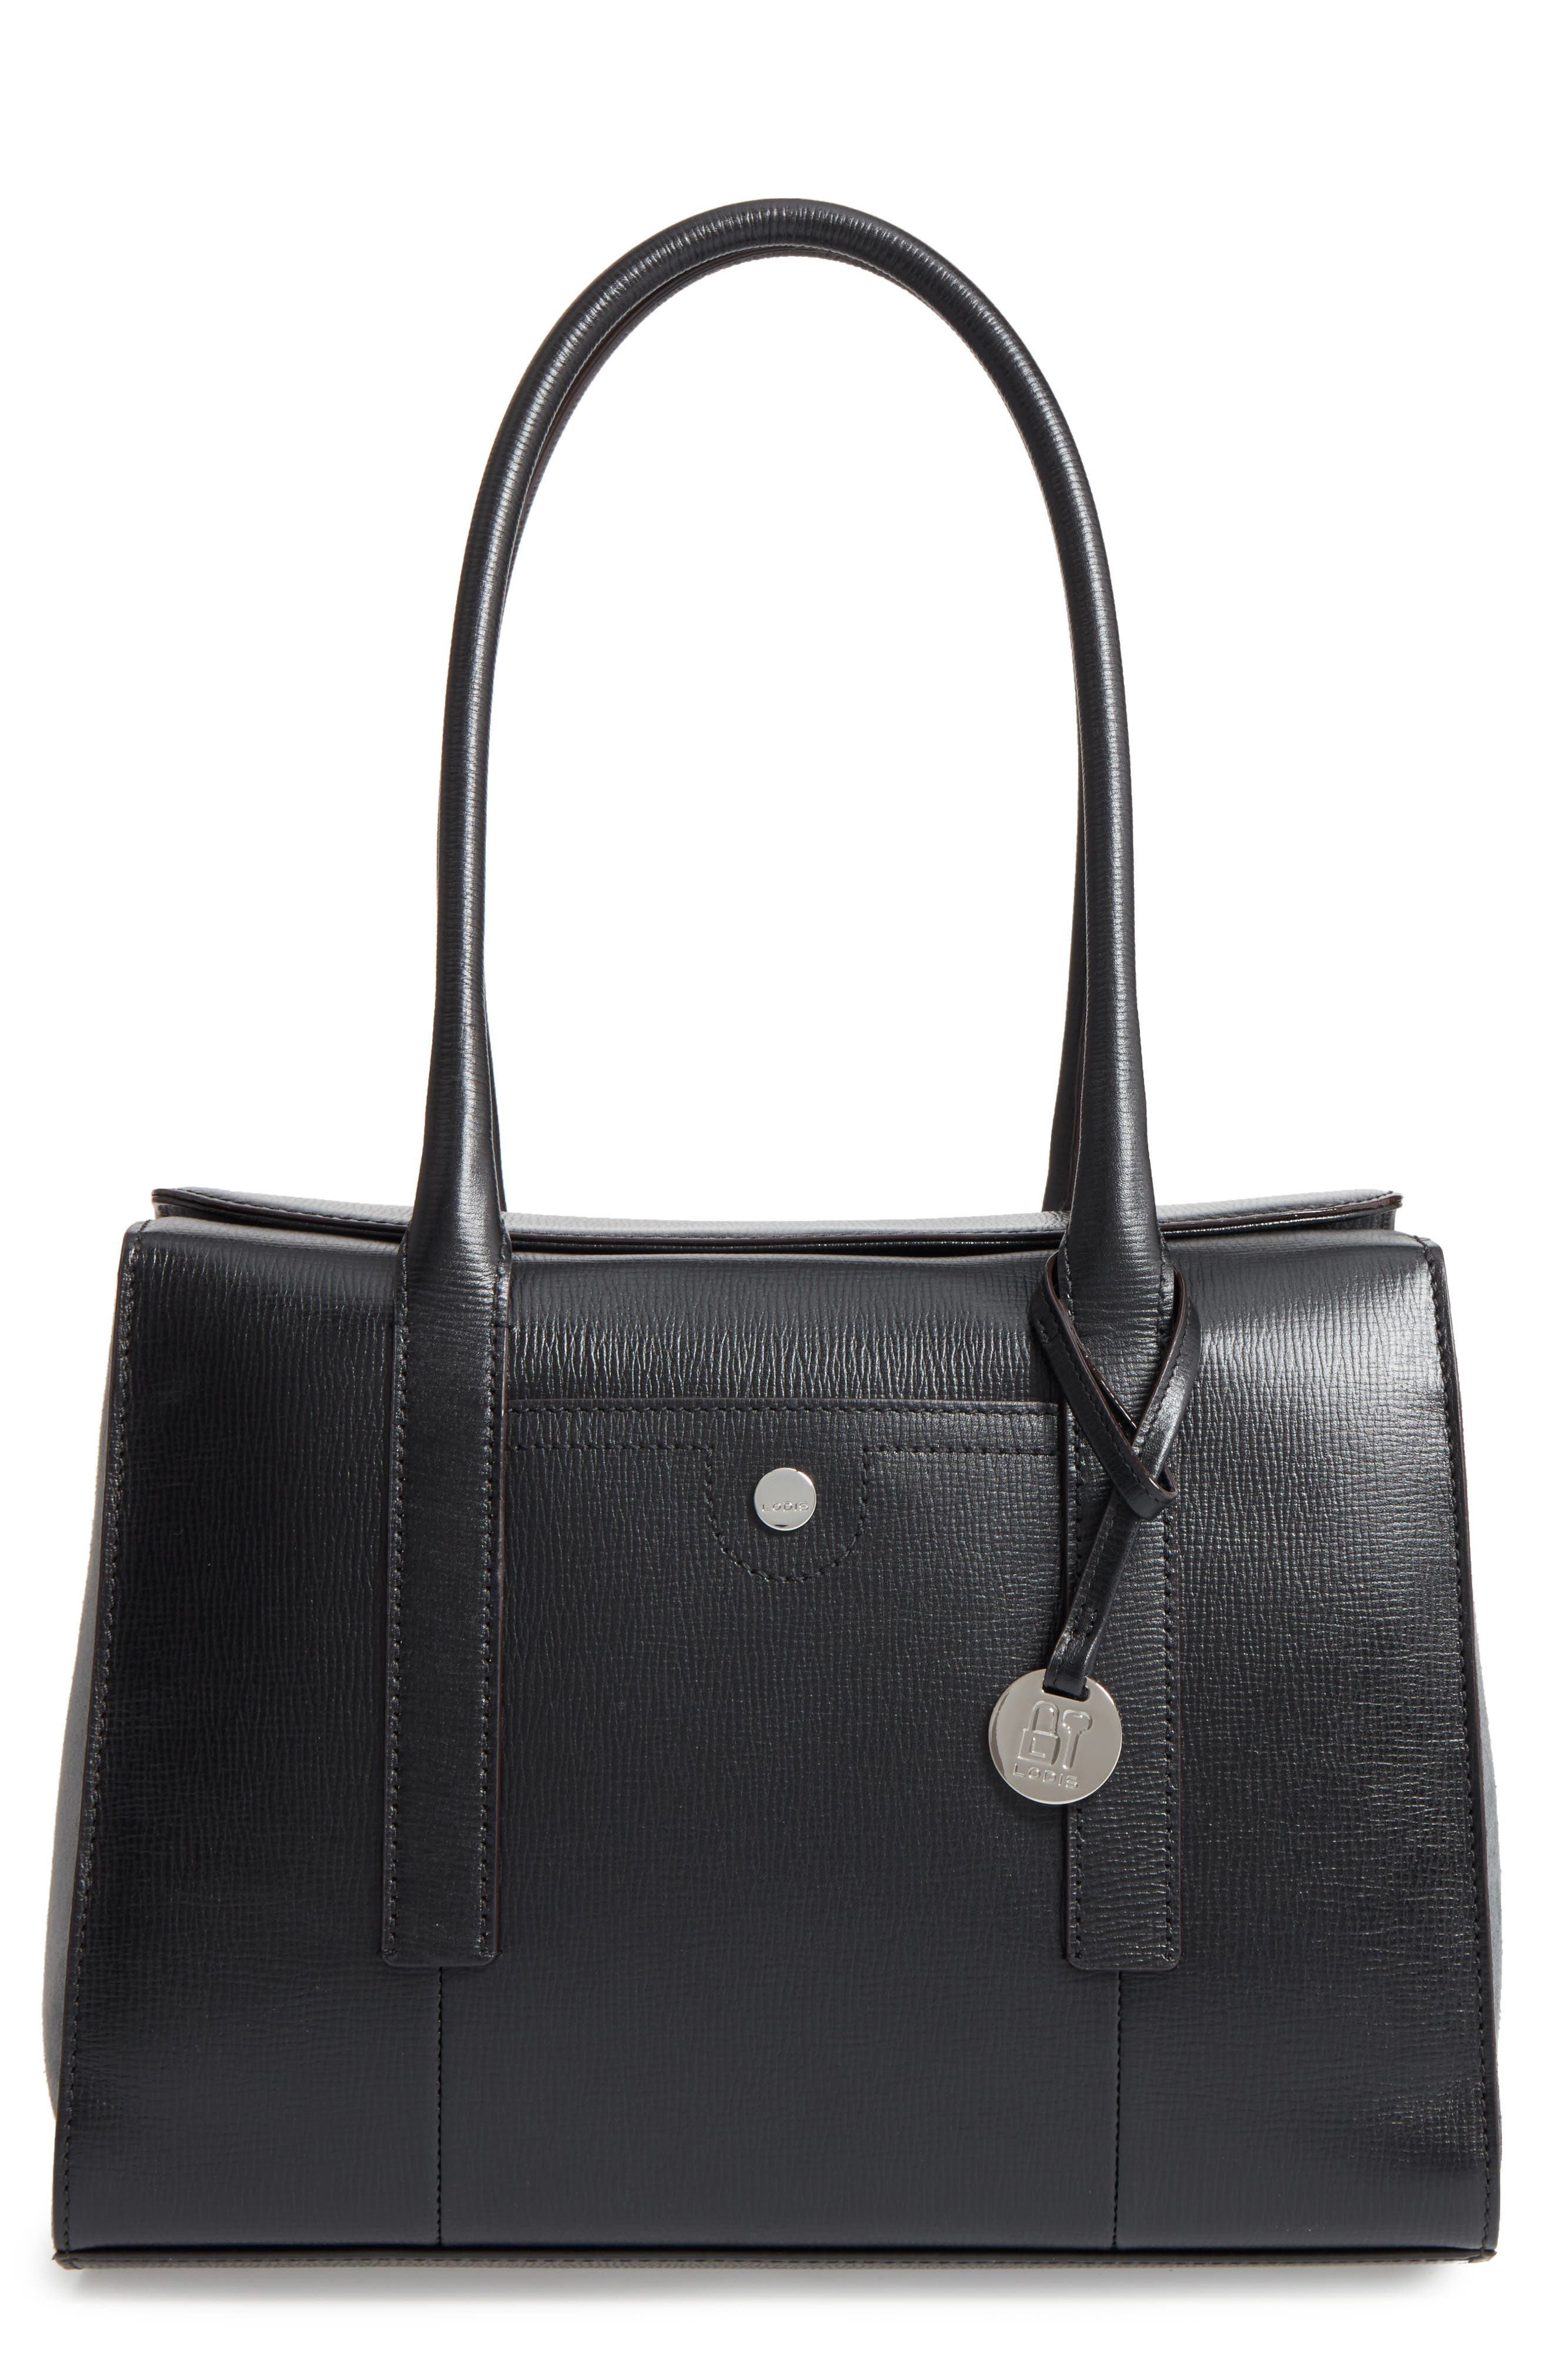 Business Chic Paula RFID-Protected Coated Leather & Suede Brief Shoulder Bag,                         Main,                         color, Black